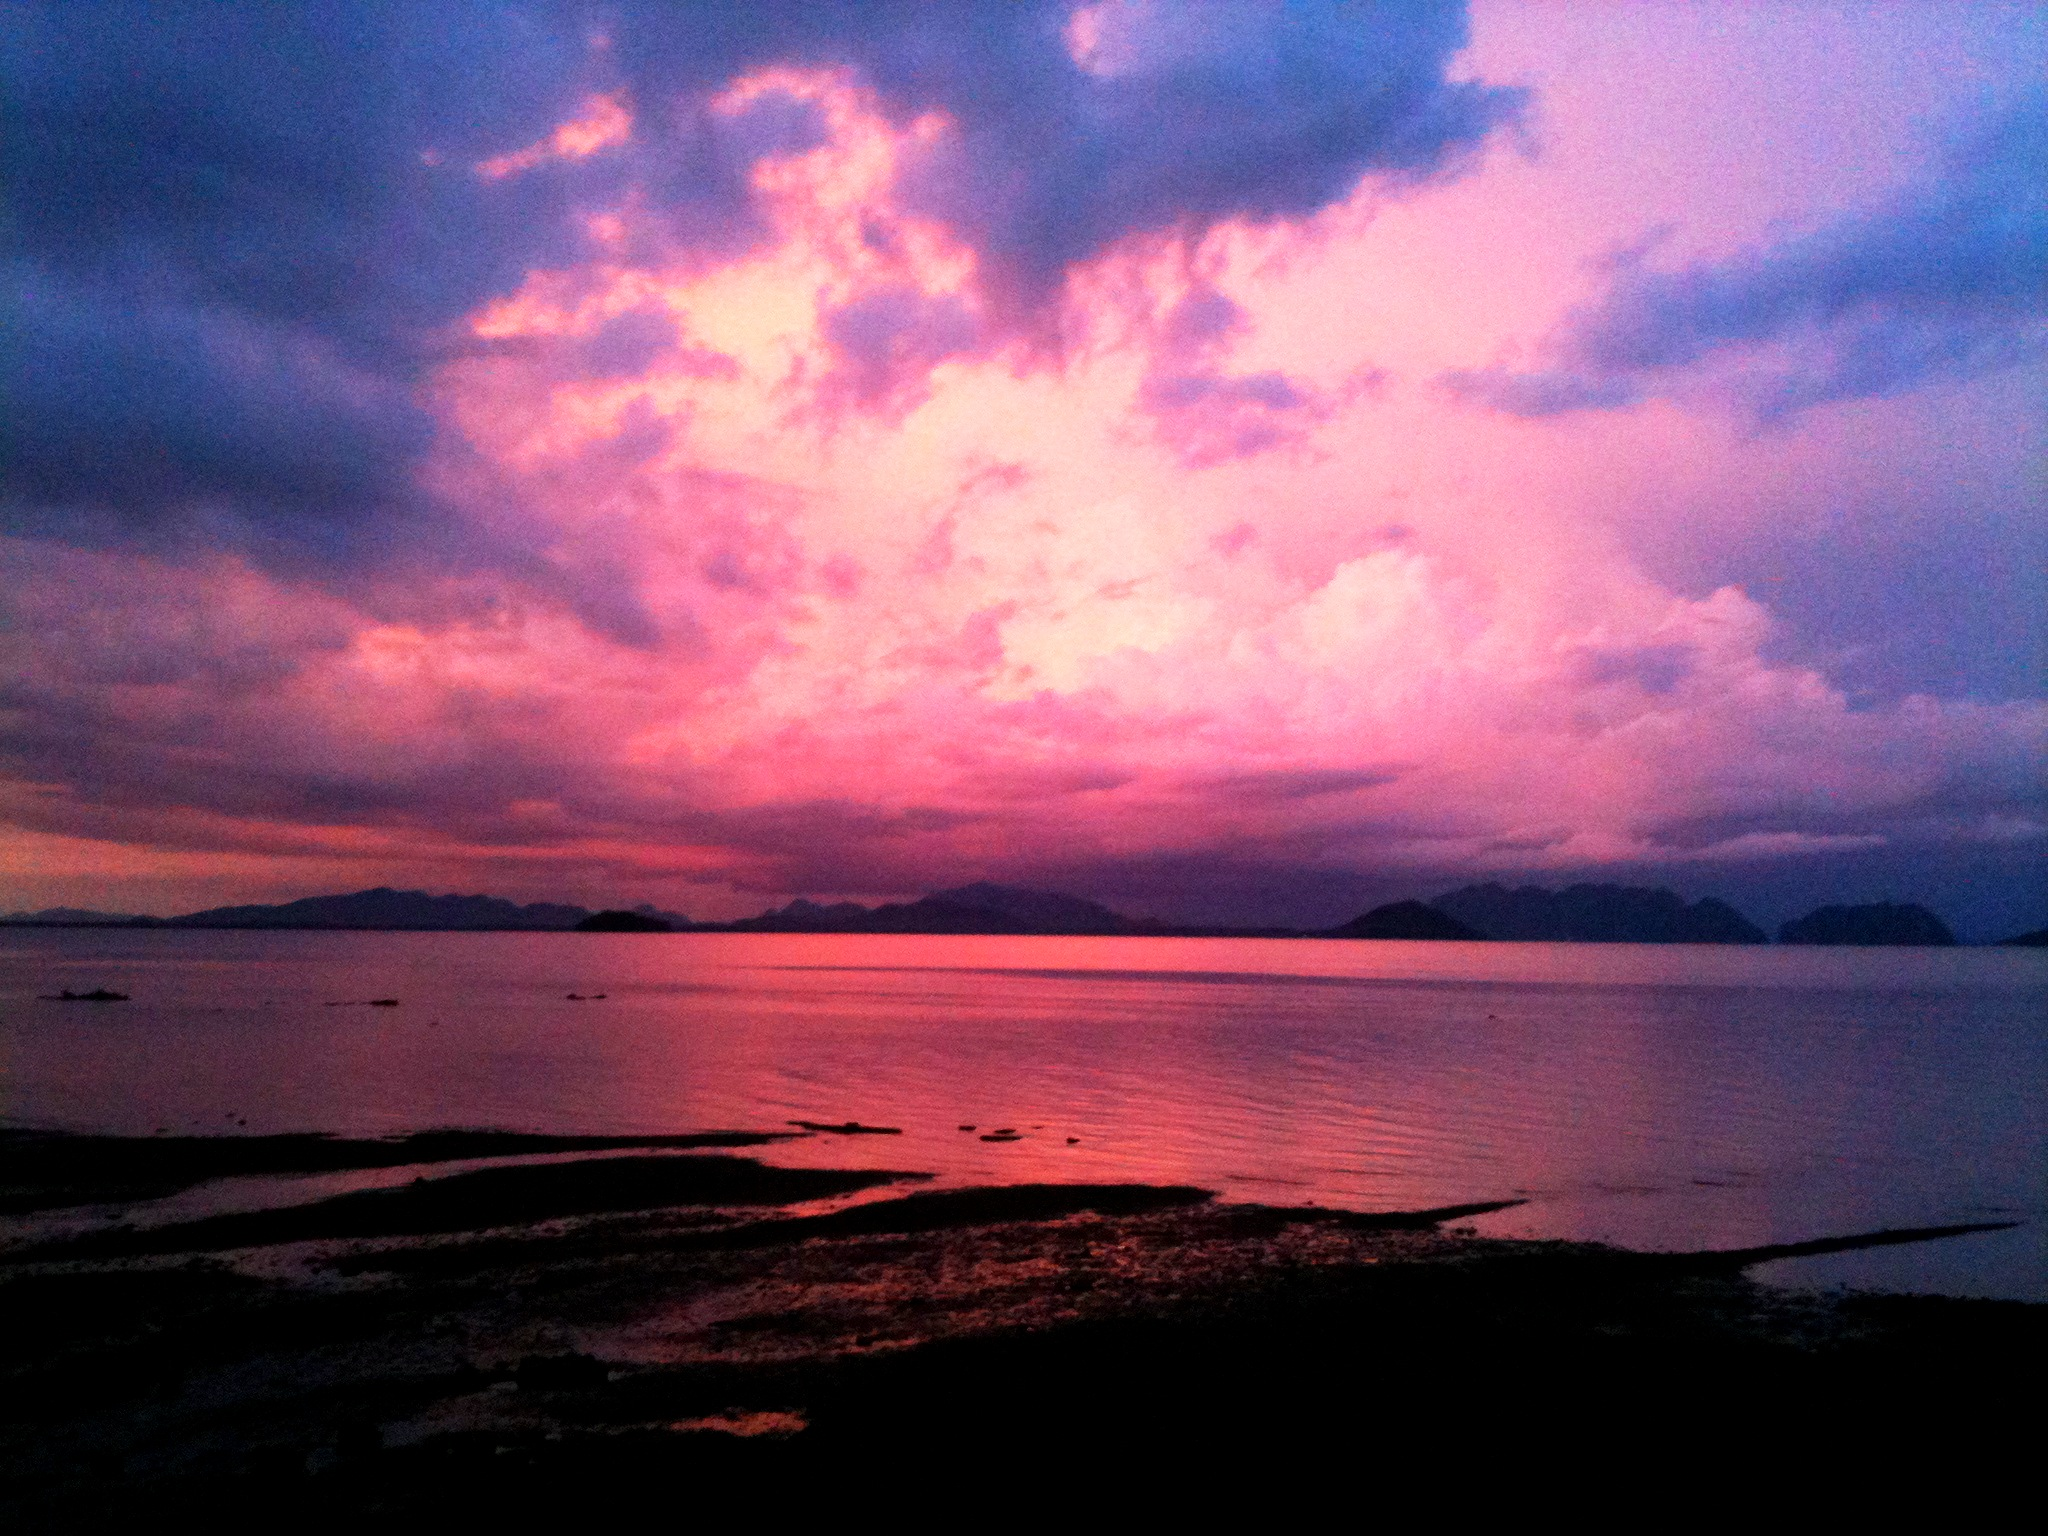 This pink sunset was actually on the islands east coast making it 2048x1536